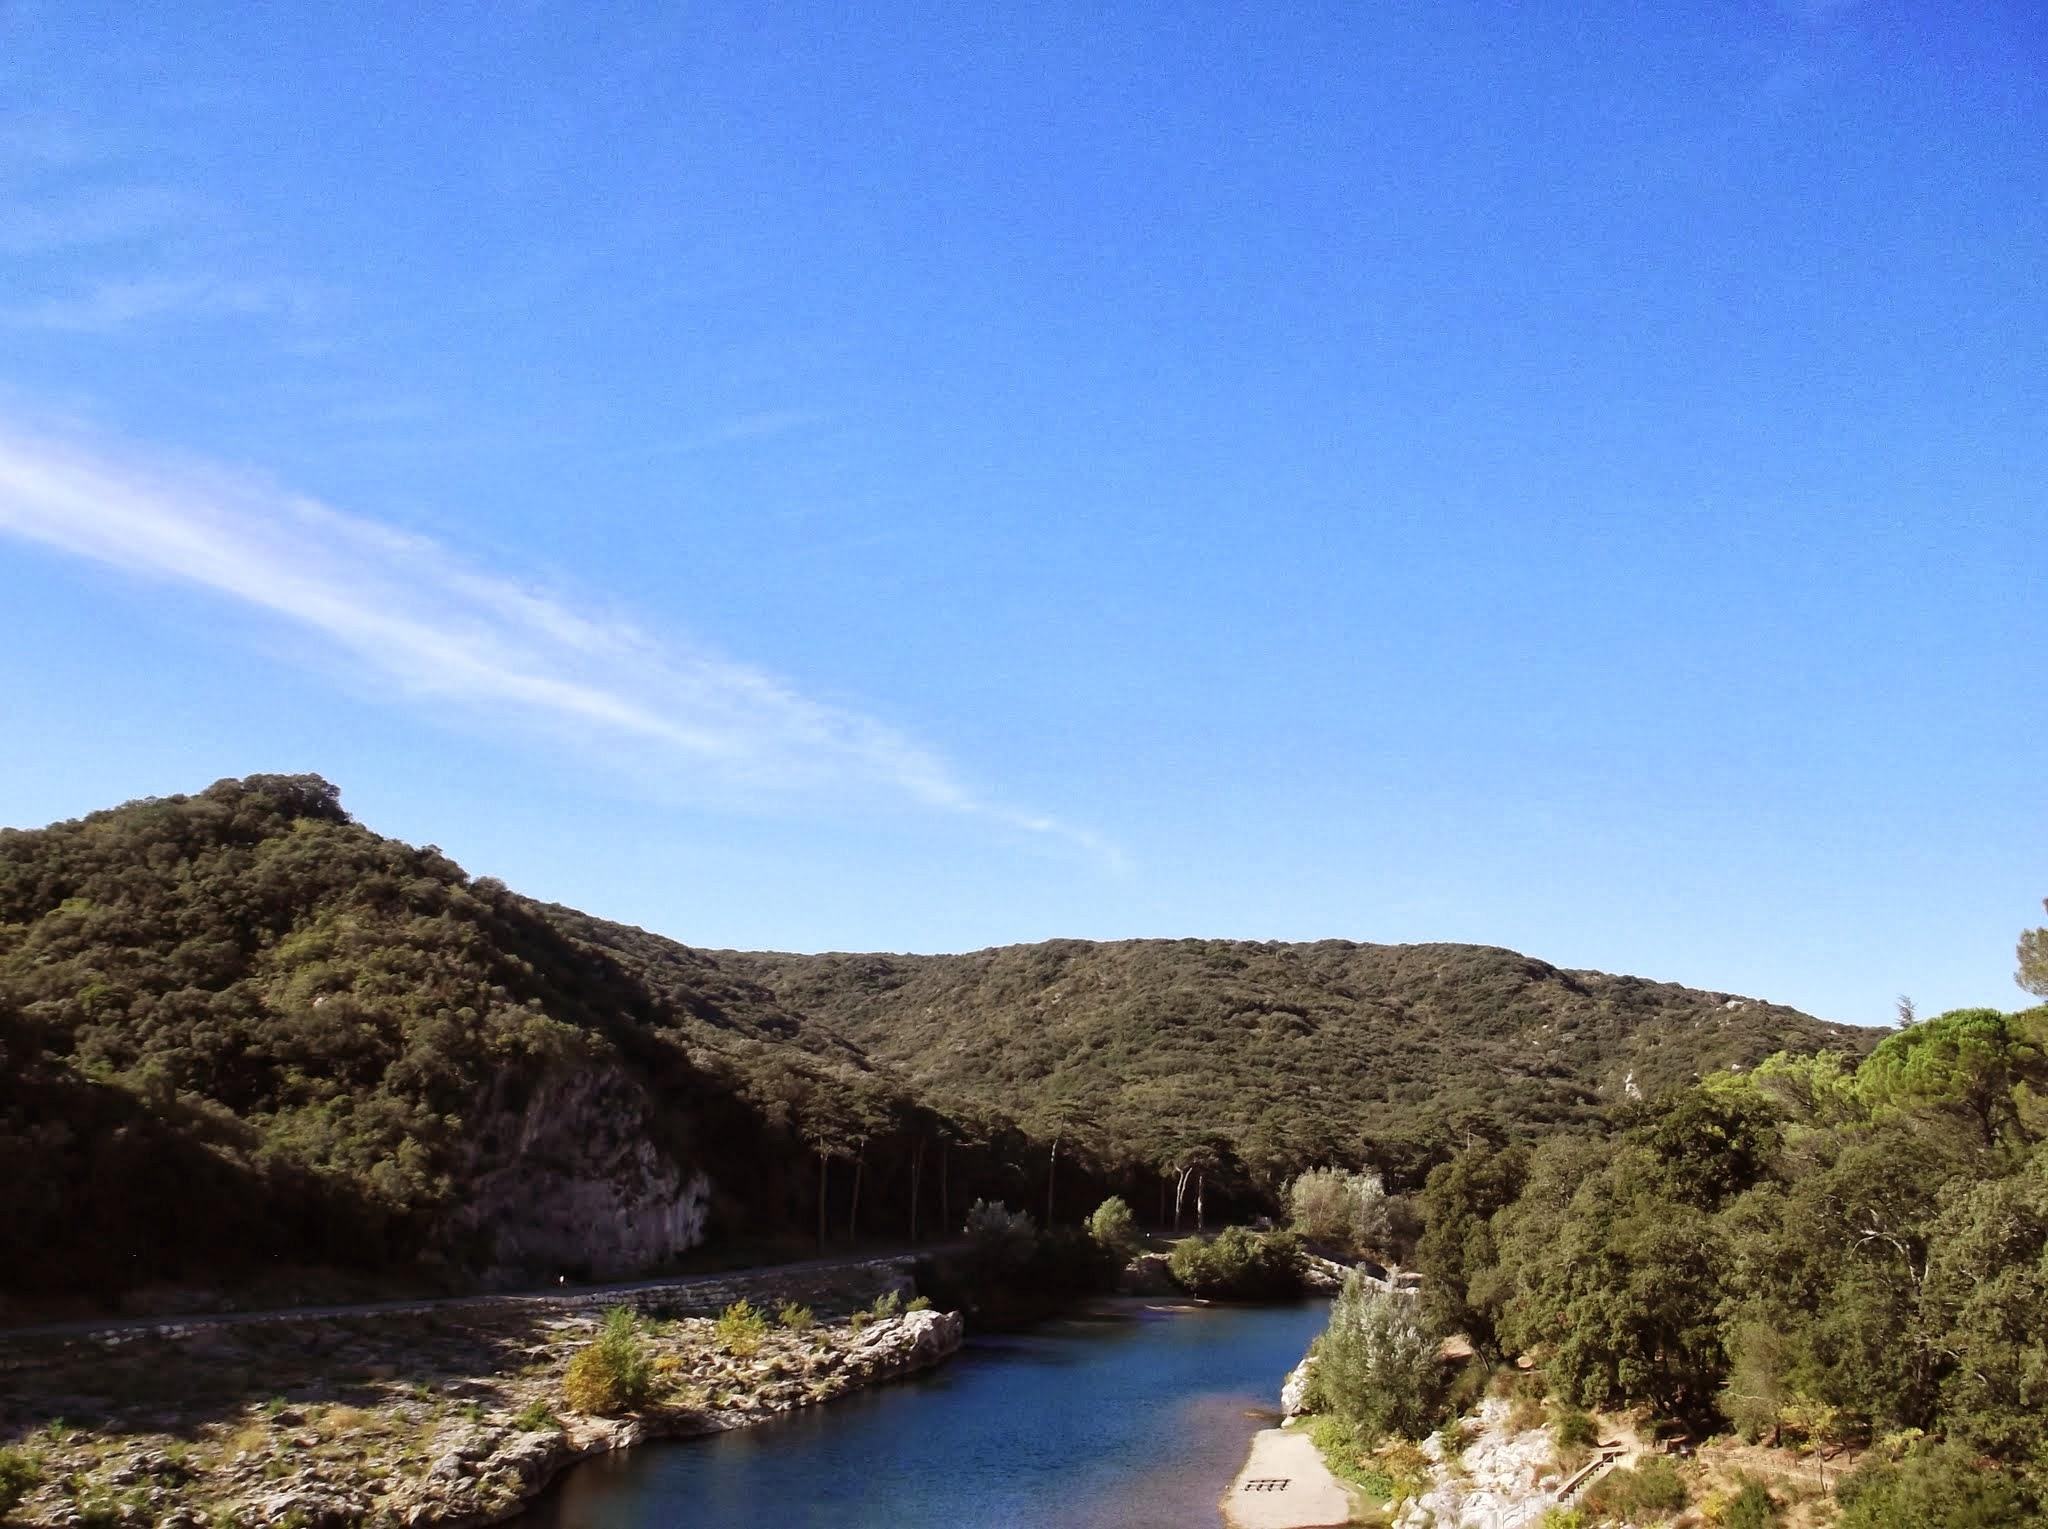 View from Pont du Gard